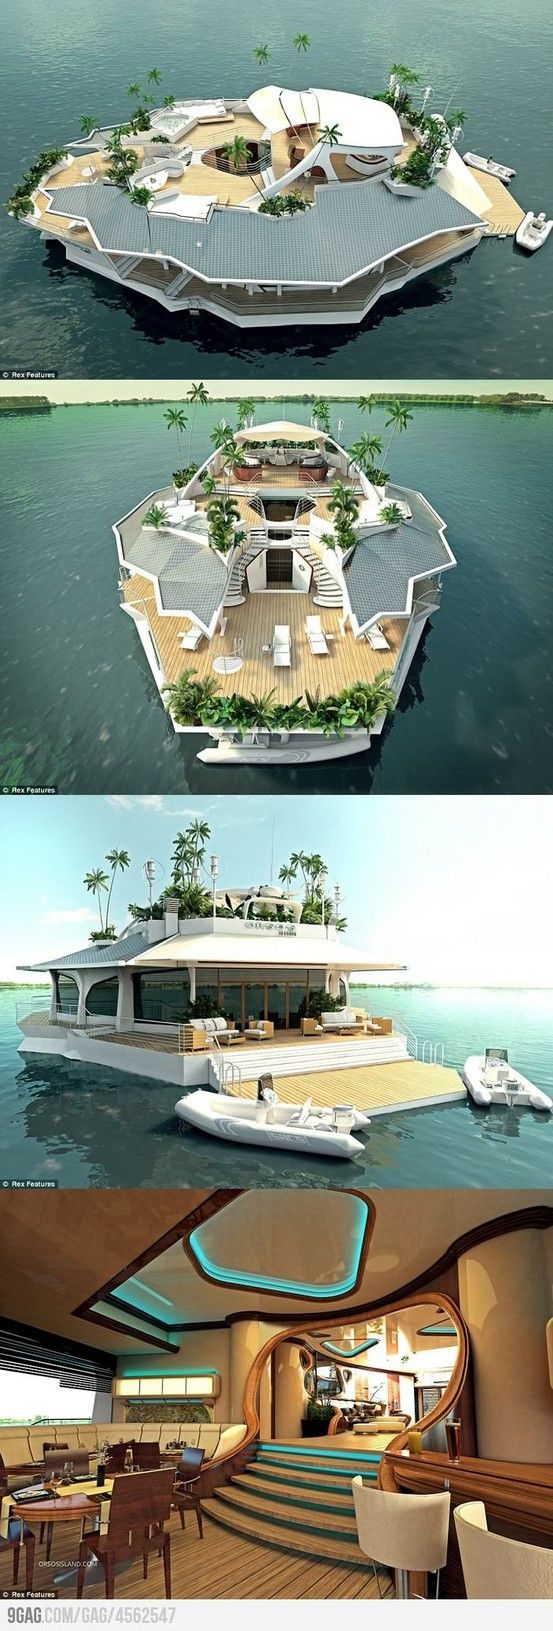 STRANGE MULTI LEVEL FLOATING ISLAND VACATION HOME - DON'T LIKE THE VIEW? JUST MOVE YOUR ISLAND!